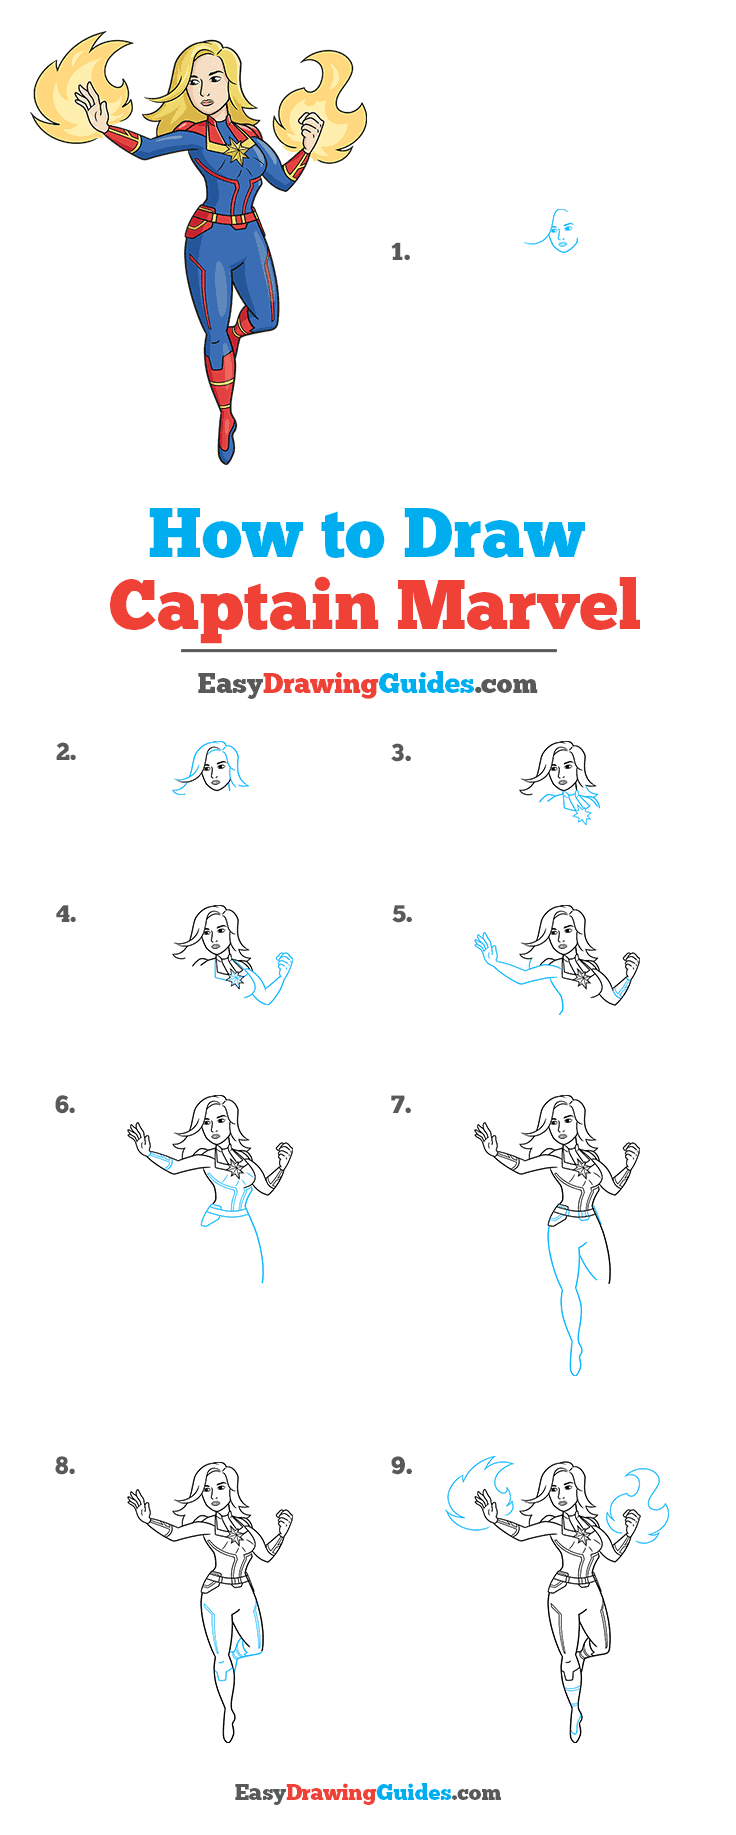 How to Draw Captain Marvel Step by Step Tutorial Image